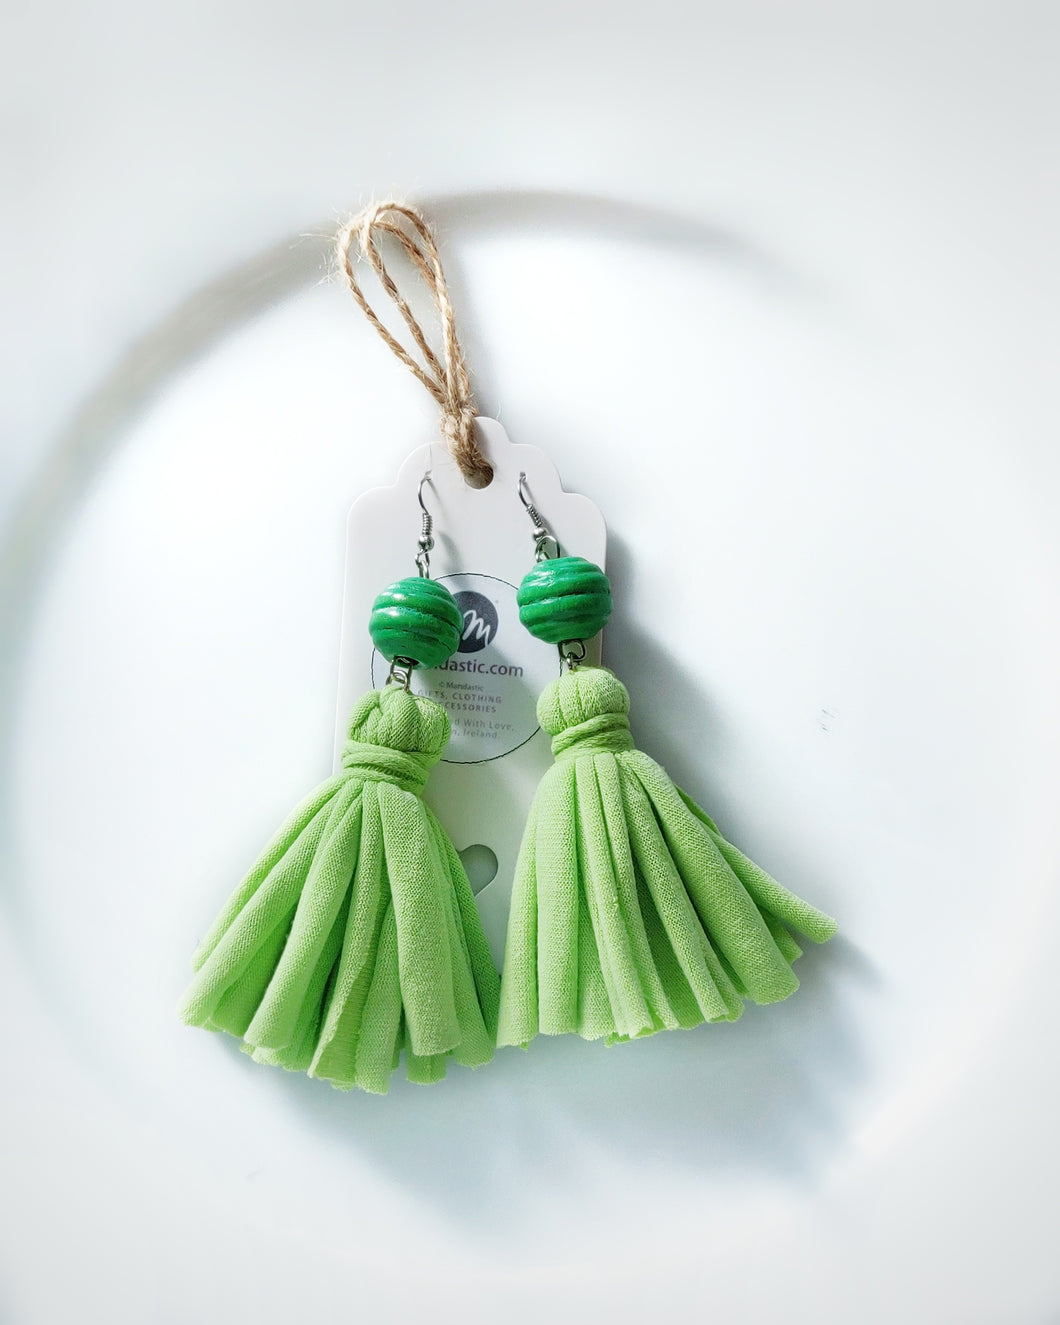 A pair of green tassel dangle earrings made with re-purposed cotton T-shirts and green wooden beads